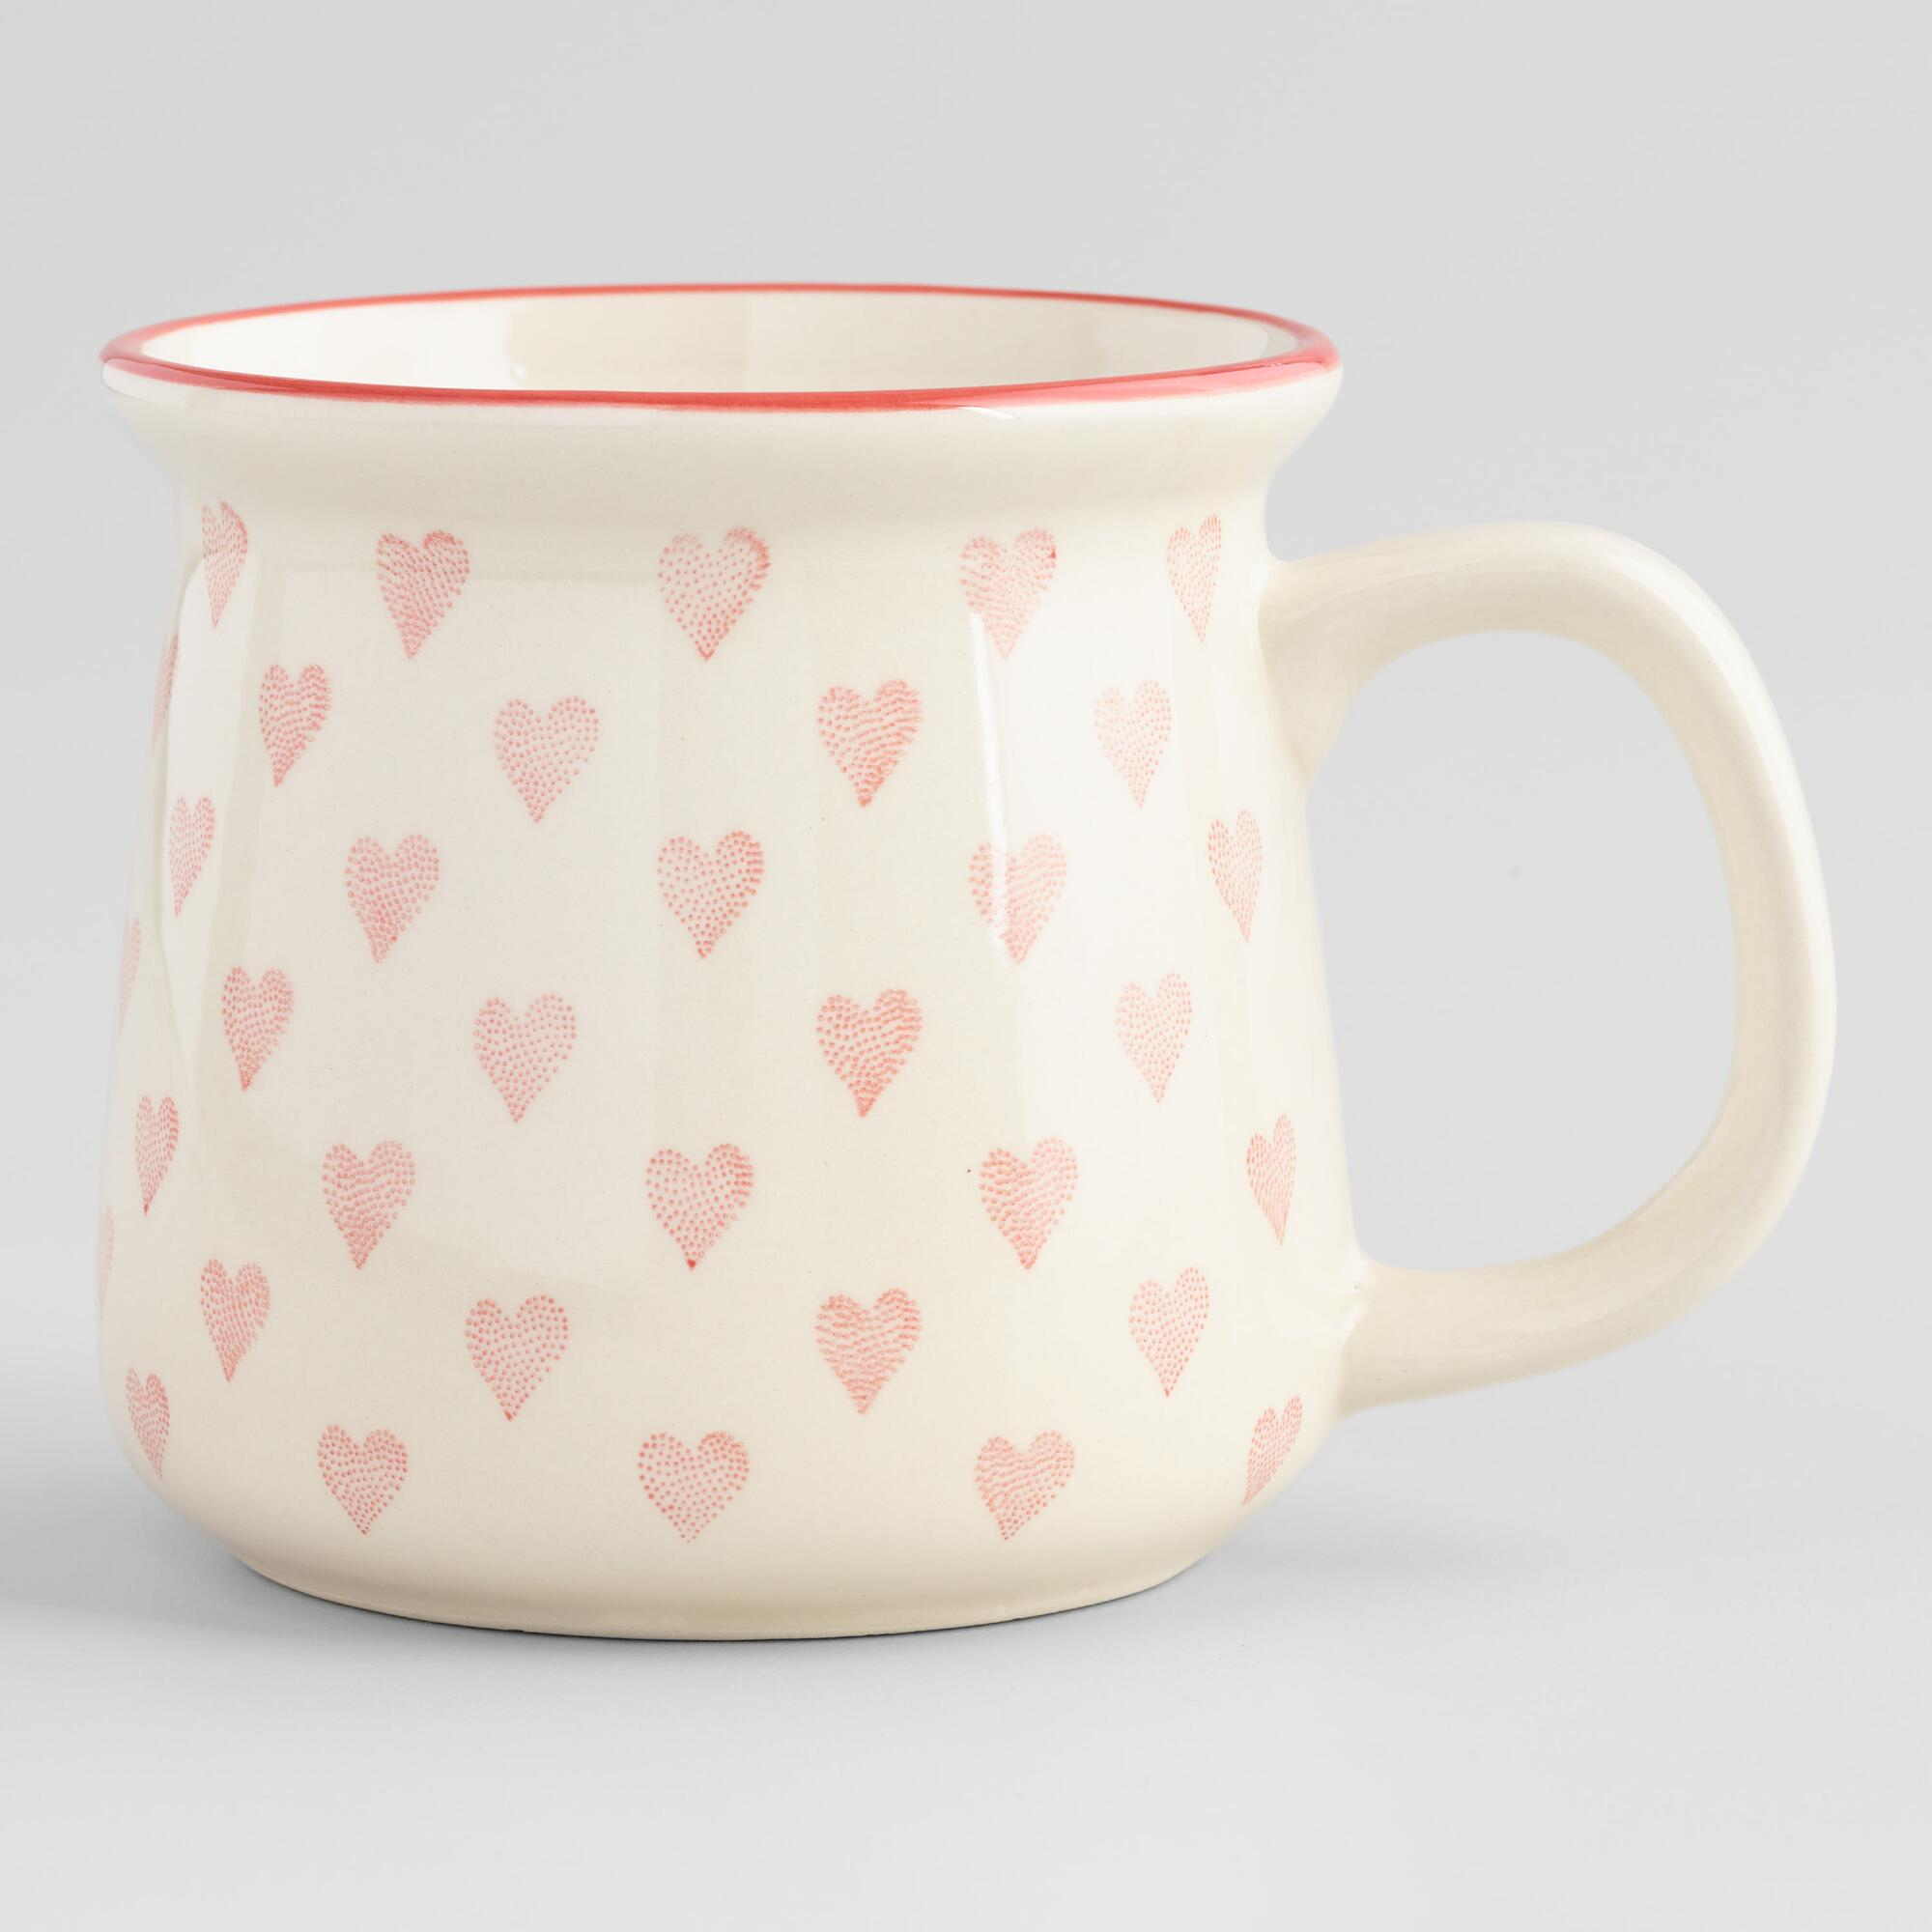 Vintage Christmas Gift Ideas for Women Red and Ivory Hearts Mug by World Market $7.99 AT vintagedancer.com